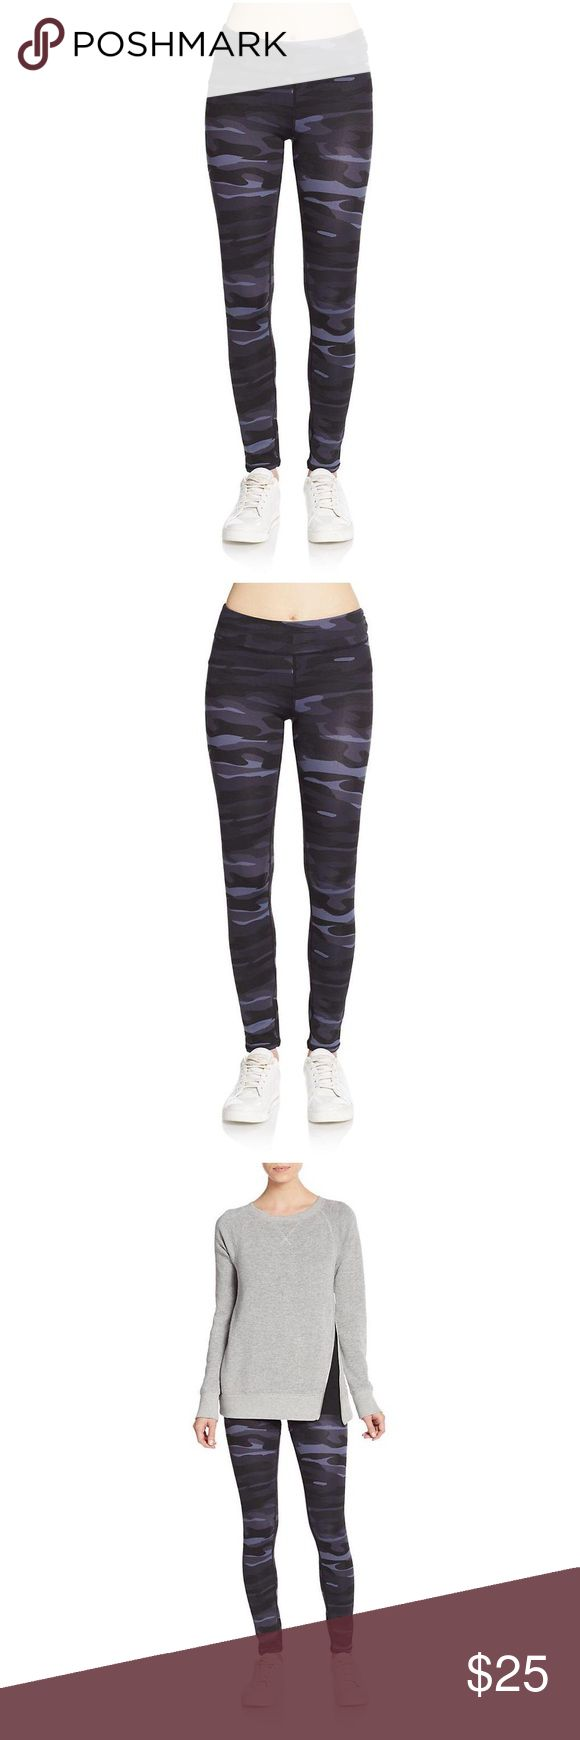 MARC NEW YORK BY ANDREW MARC  Leggings MARC NEW YORK BY ANDREW MARC  Camo-Print Performance Leggings. Super light and perfect for running or if you just want stylish leggings!! Andrew Marc Other